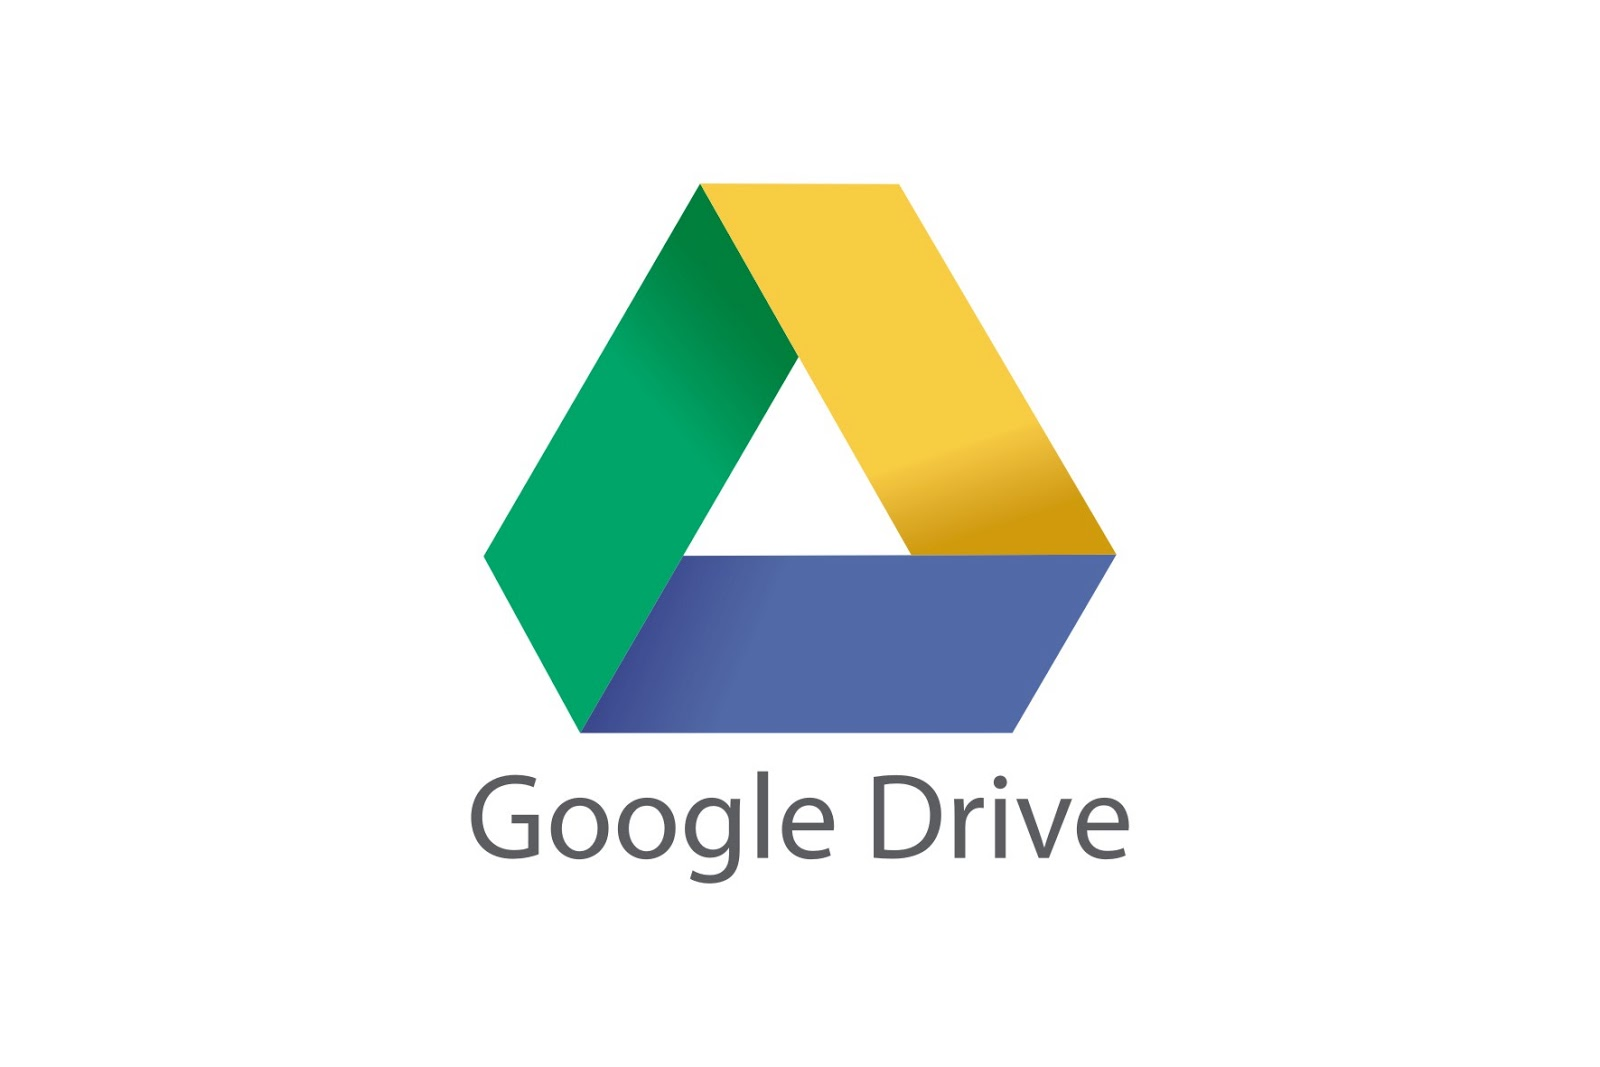 Can We Use Laravel to Build a Custom Google Drive UI